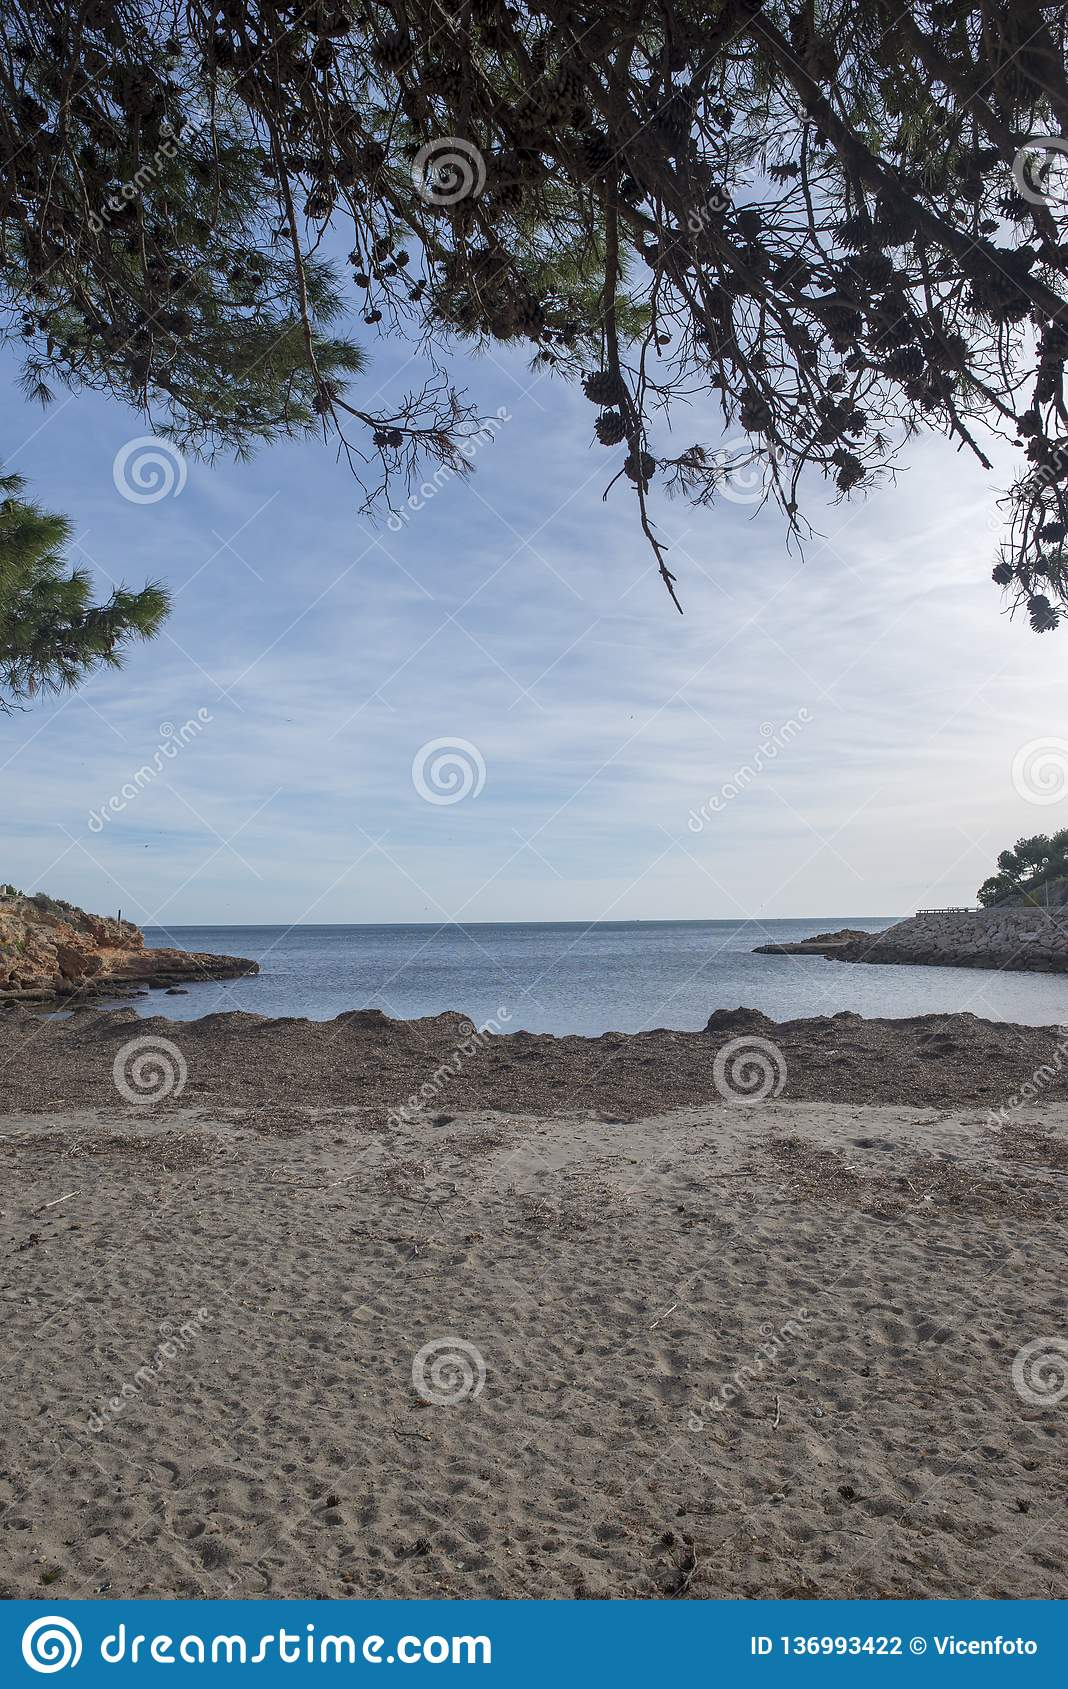 The mediterranean sea in the ametlla de mar, Costa daurada. Spain stock photography